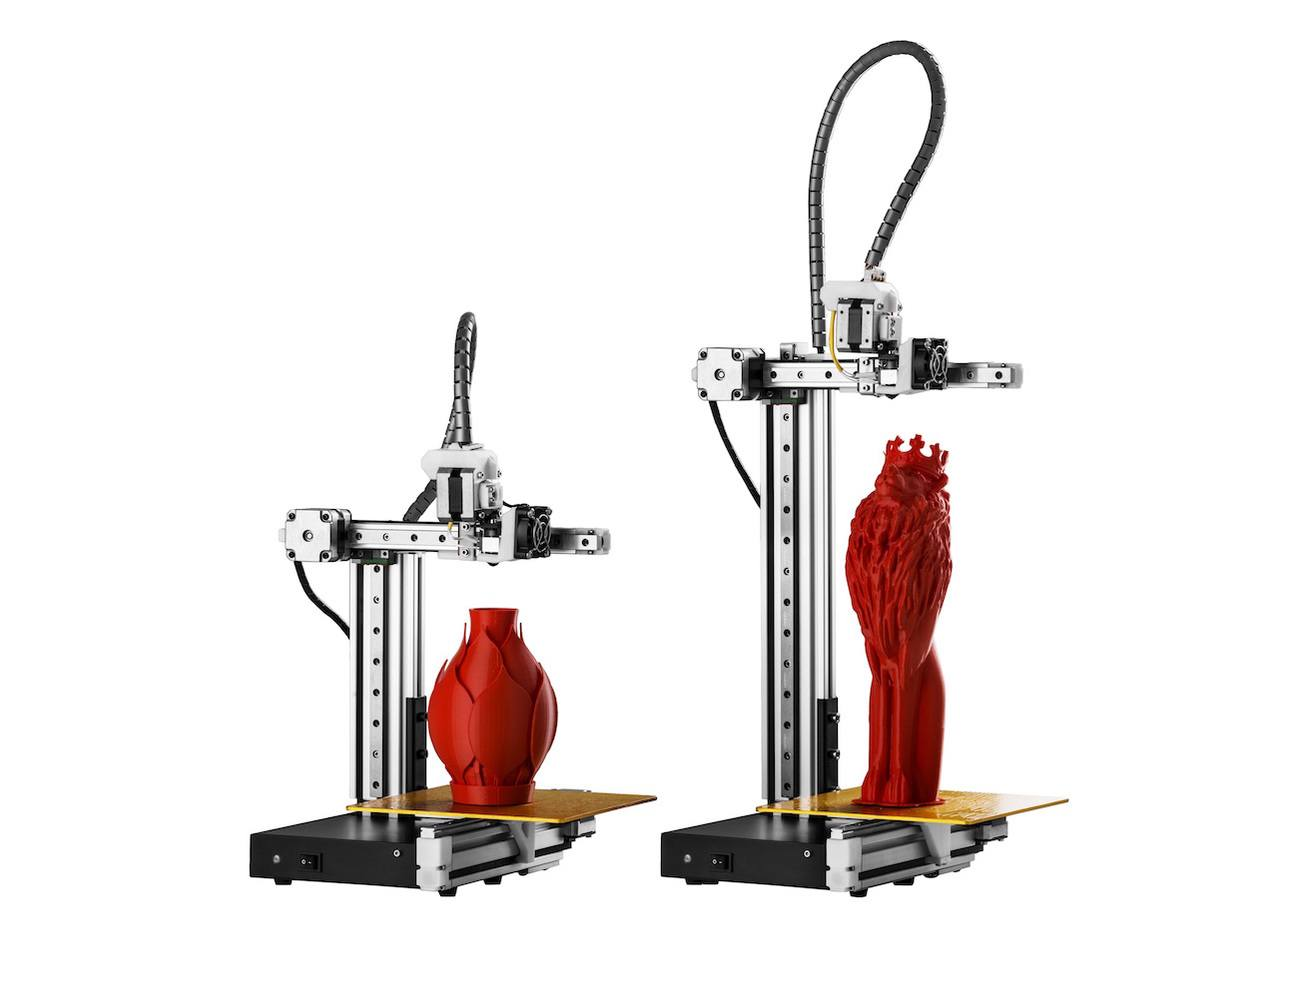 Cetus3D – 3D Printer With 3 Printable Projects